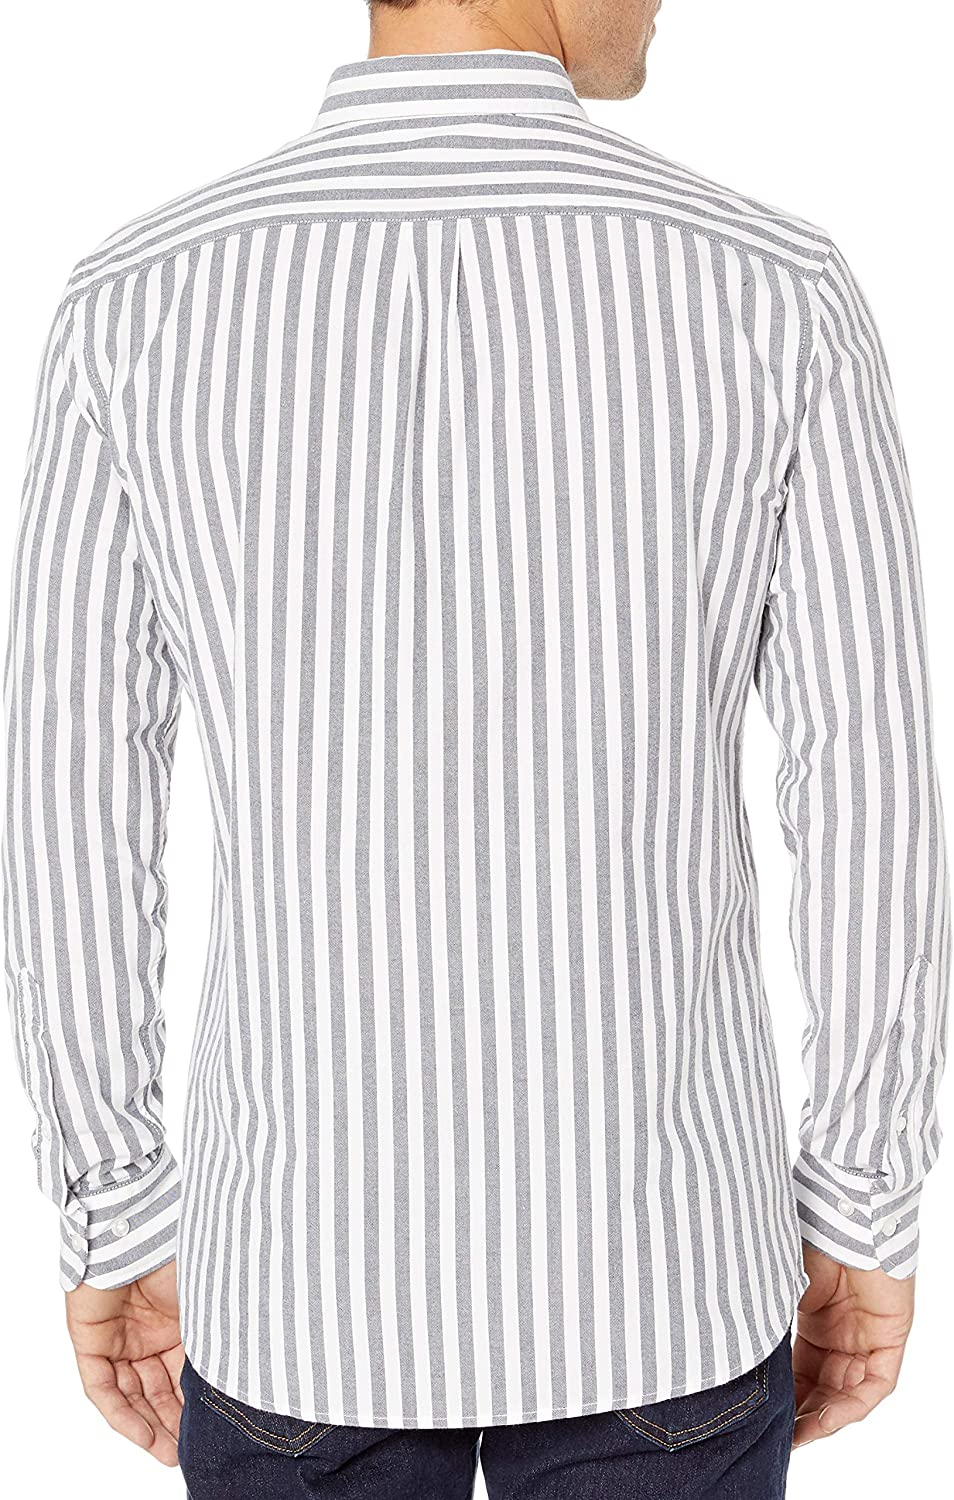 Brand Goodthreads Mens Standard-Fit Long-Sleeve Fashion Stripe Oxford Shirt